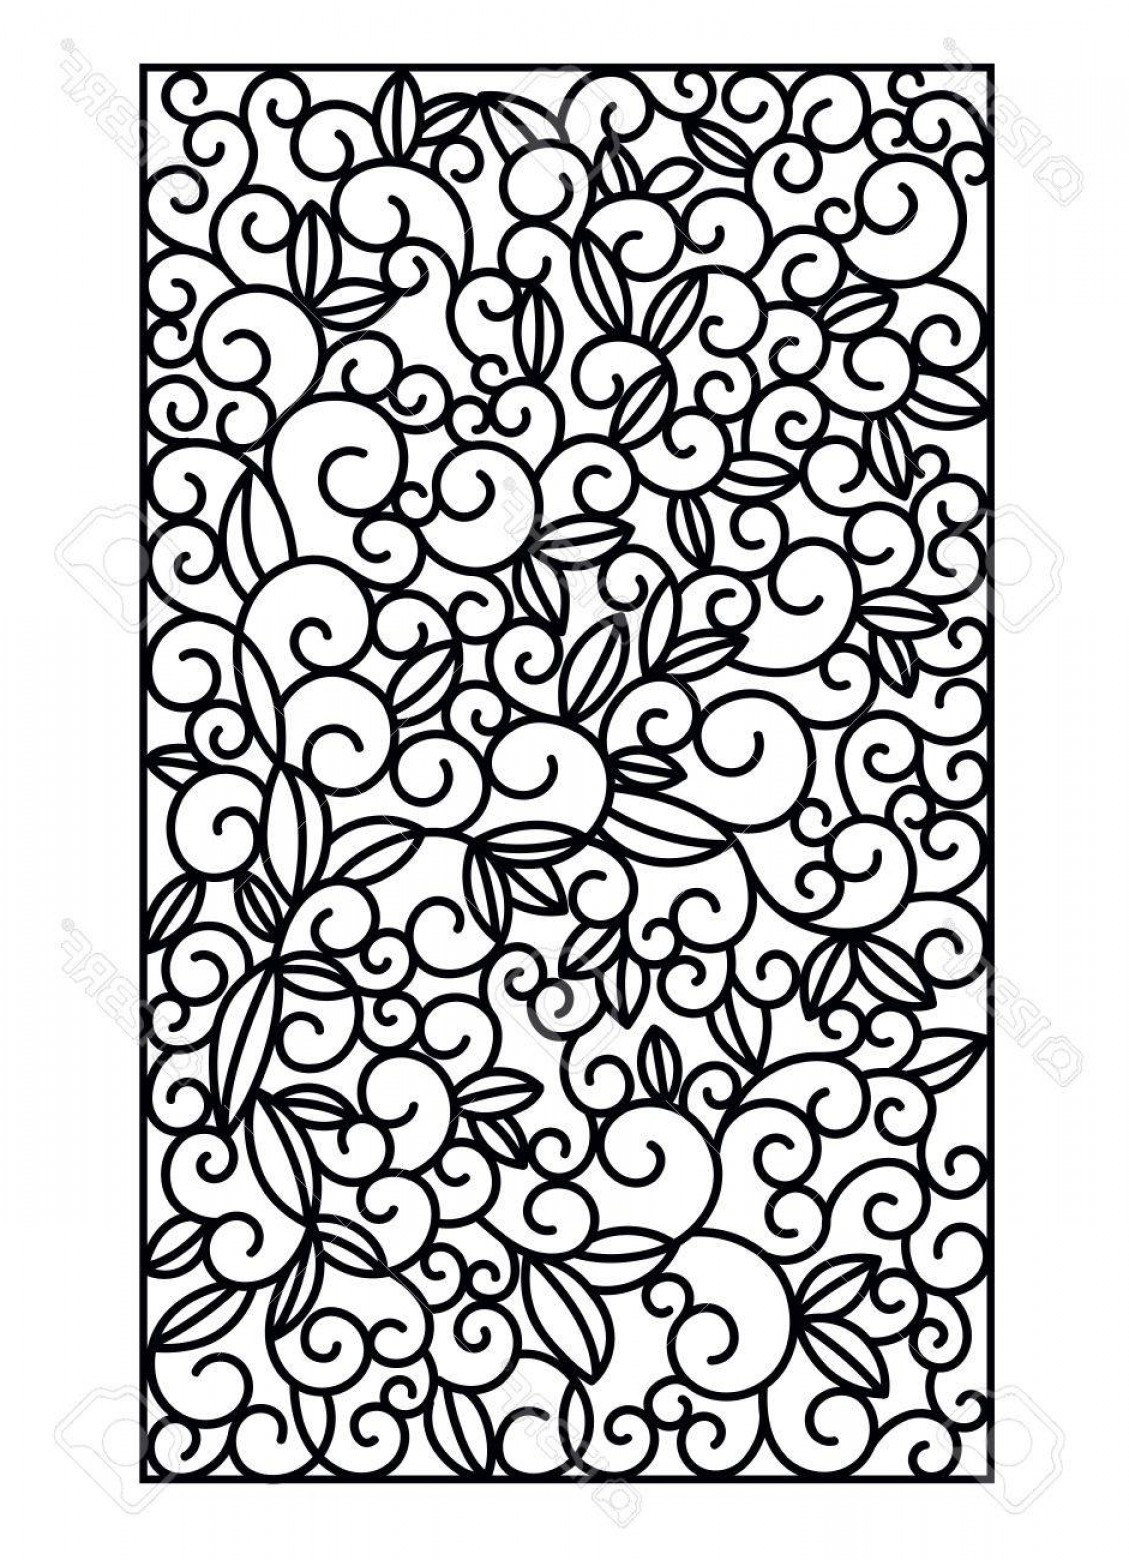 Wood Cutting Vector: Photostock Vector Laser Cut Vector Panel Cutting Paper Wood Metal Swirls Vector Illustration Hand Drawn Line Art